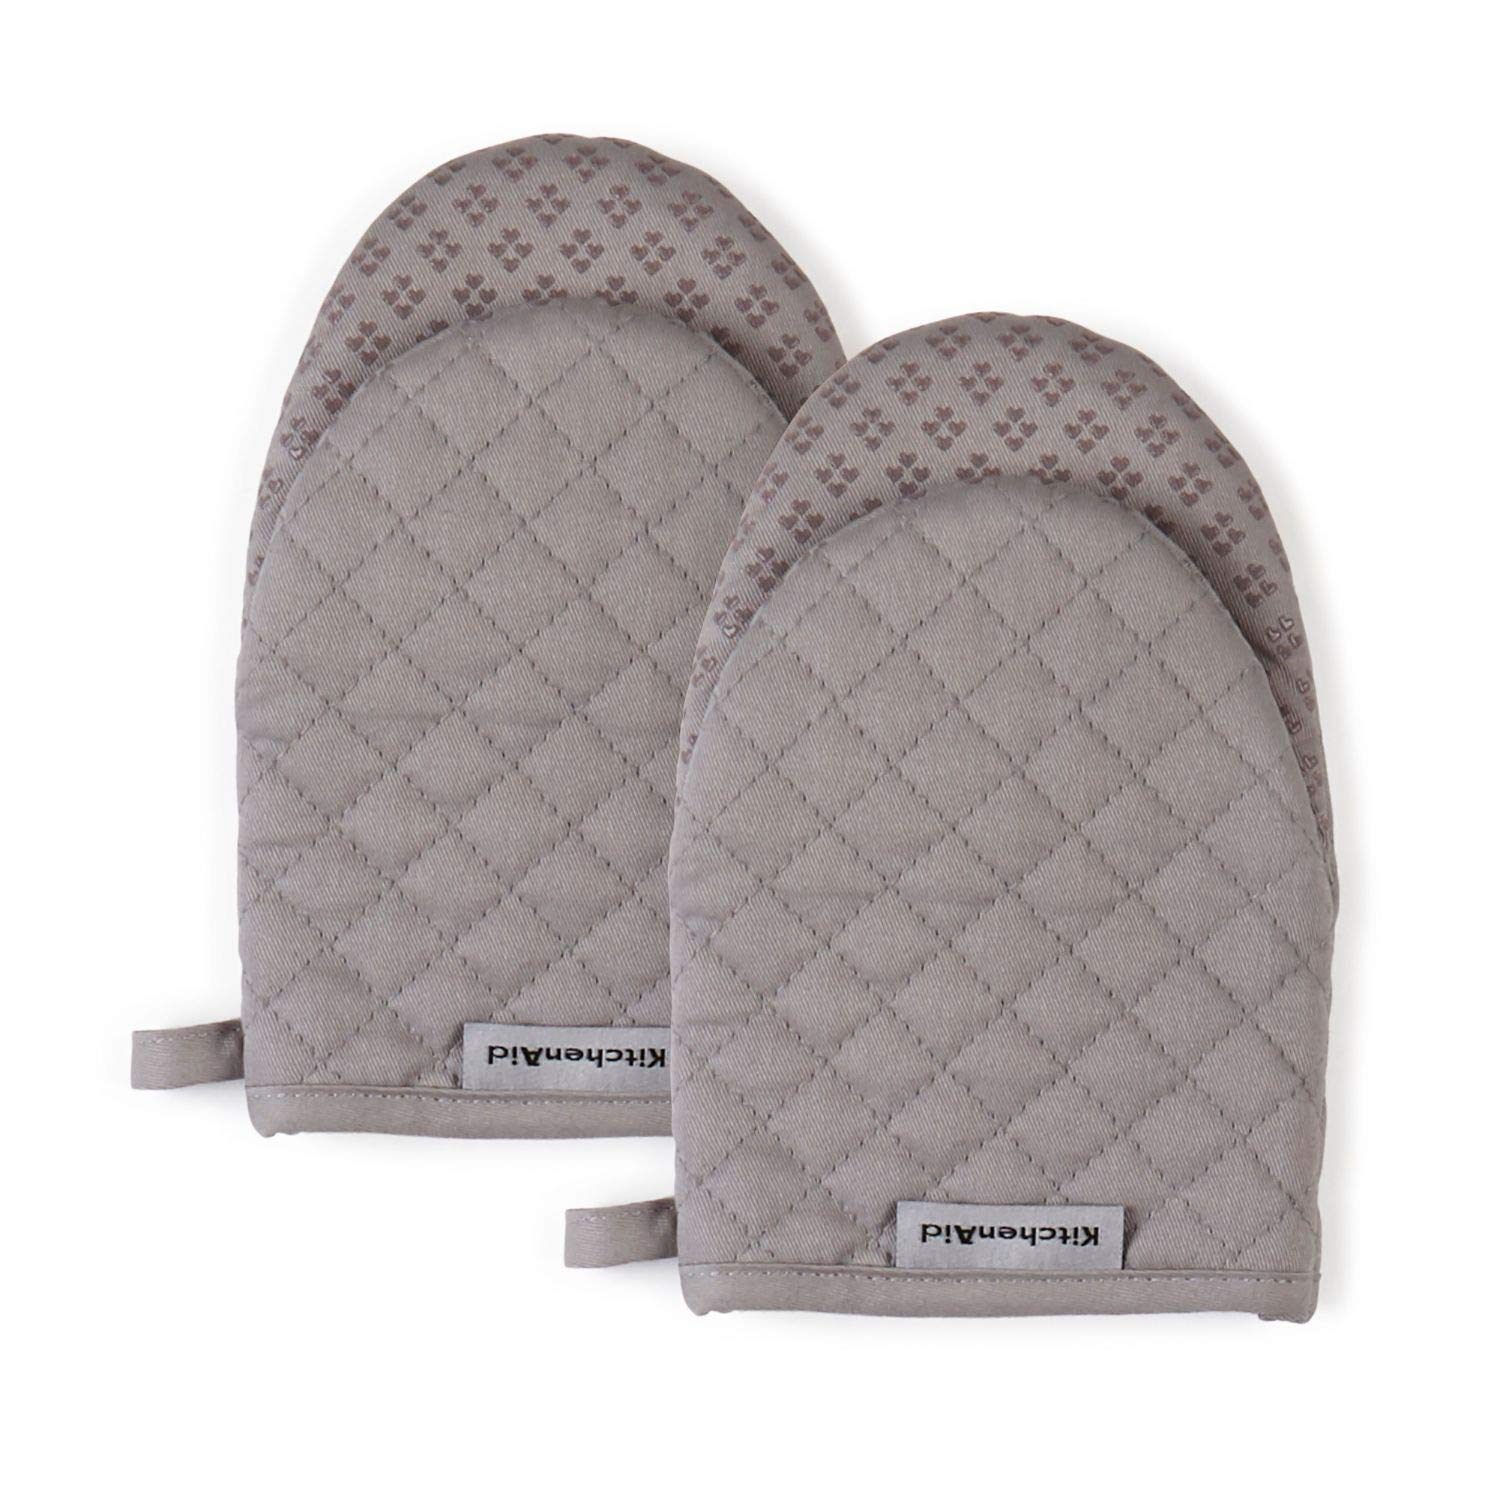 KitchenAid Asteroid Mini Cotton Oven Mitts with Silicone Grip, Set of 2, Gray